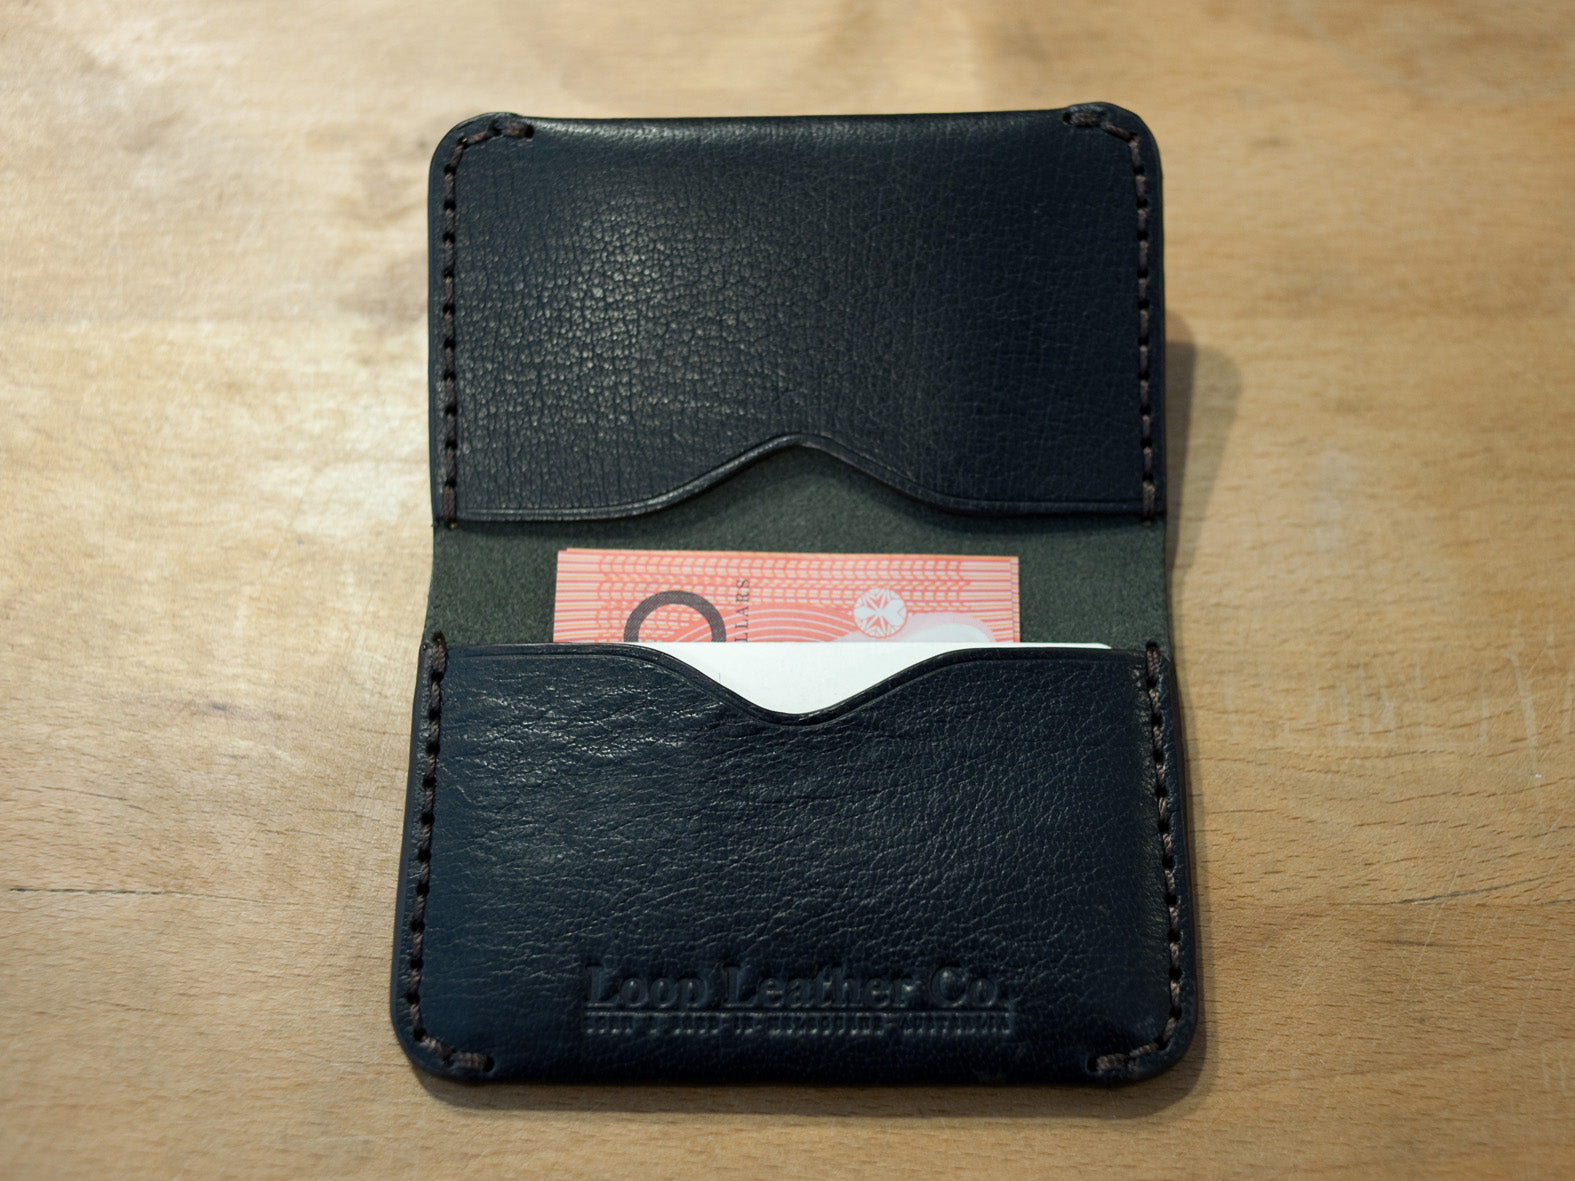 LOOP HANDMADE BI FOLD CARD HOLDER - BLACK